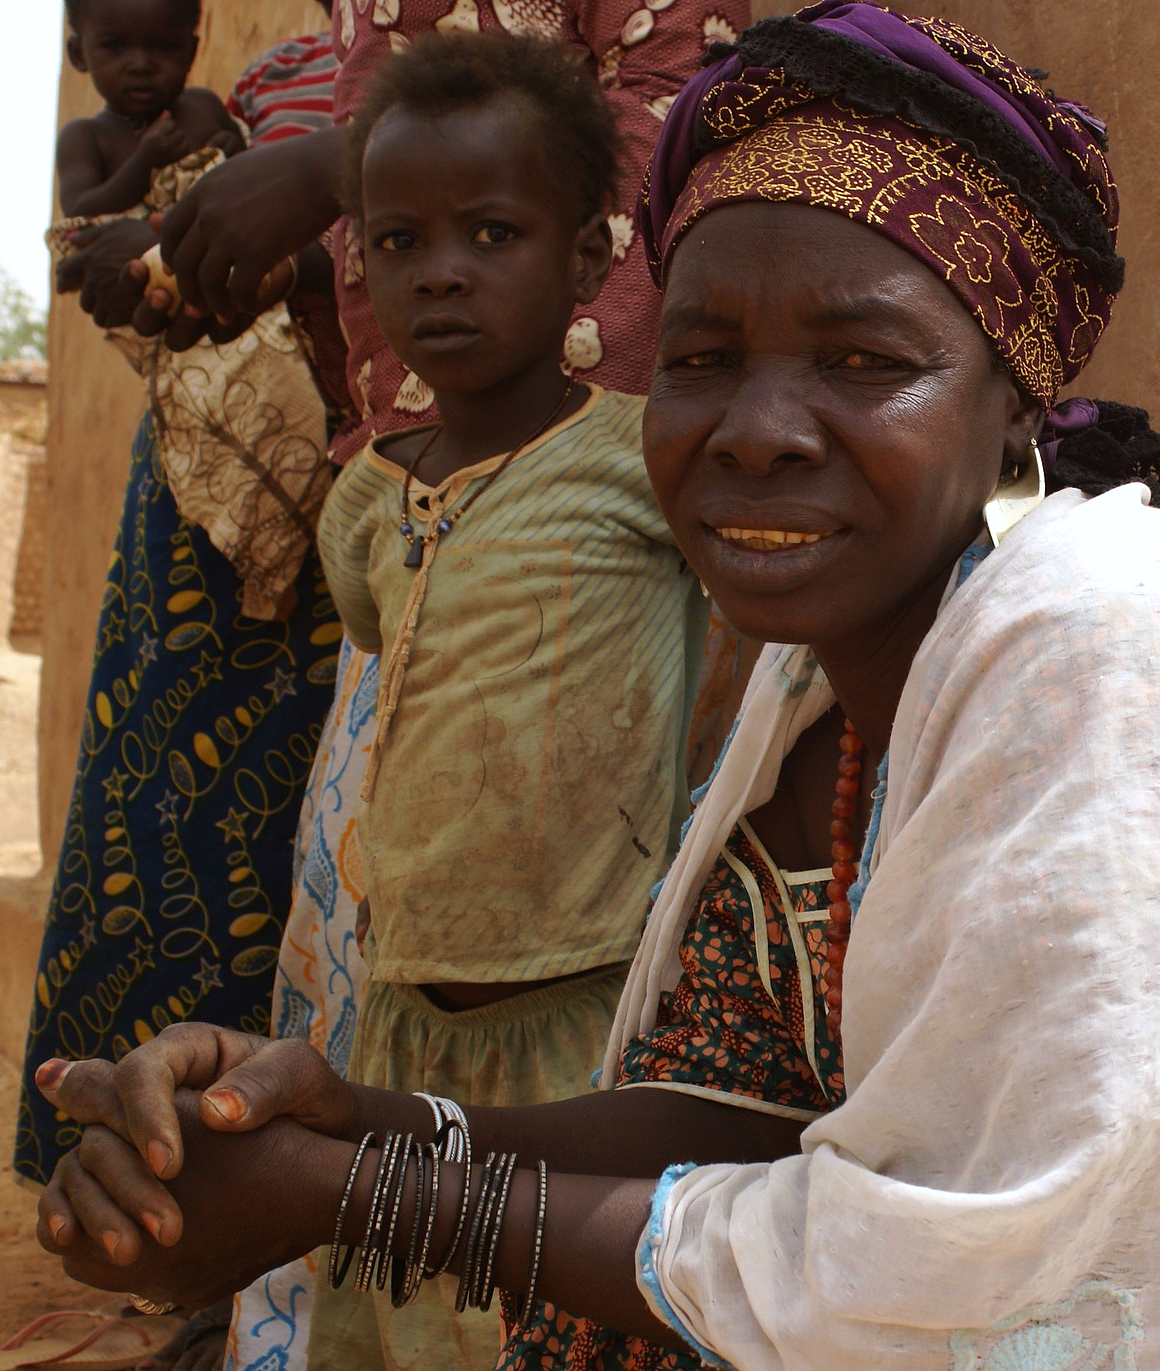 A Fulani woman in Burkina Faso